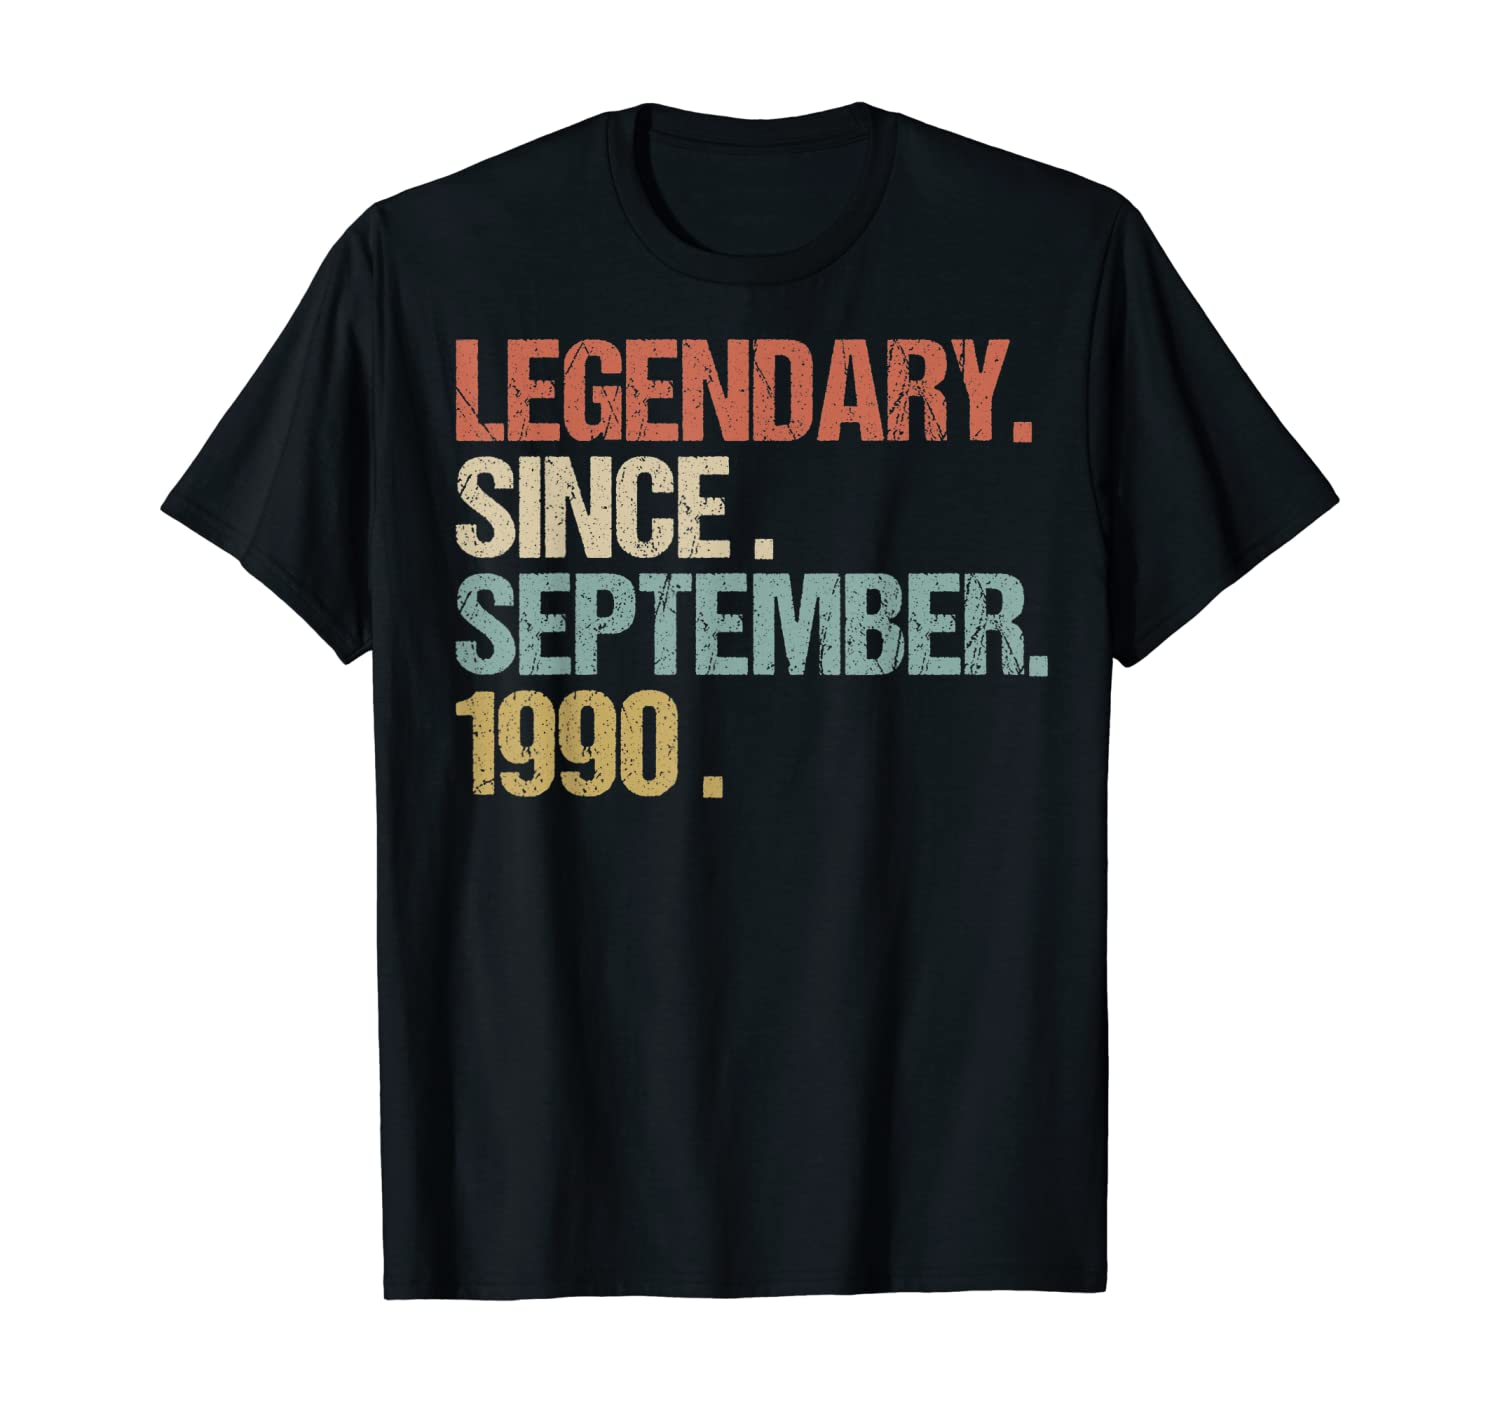 30th Birthday Legendary Since September 1990 Shirt Retro T-Shirt